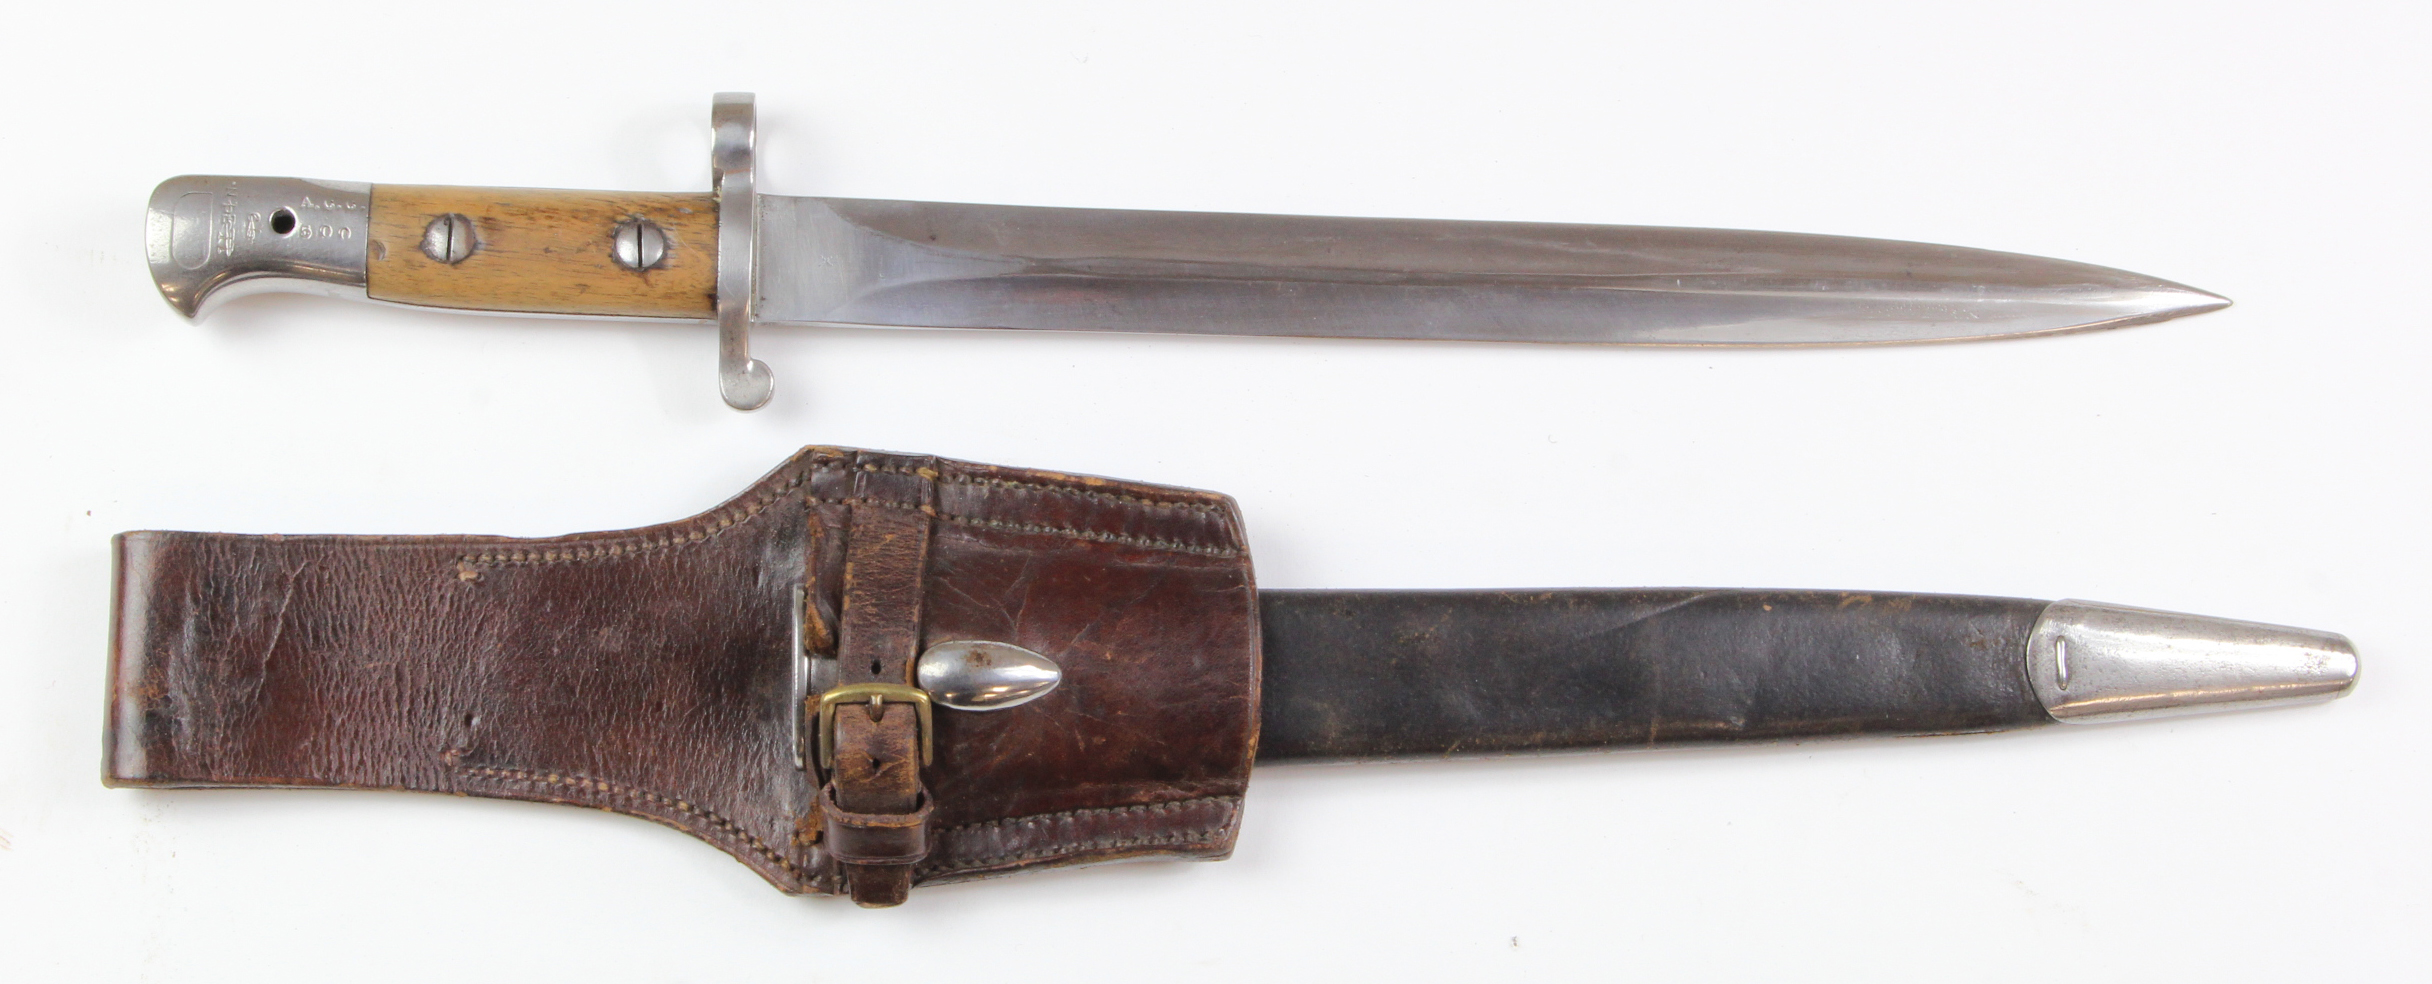 "Lot 1042 - Bayonet - a good P'03 Short Bayonet for the SMLE. Blade 12"" profuse inspection stamps, ricasso"